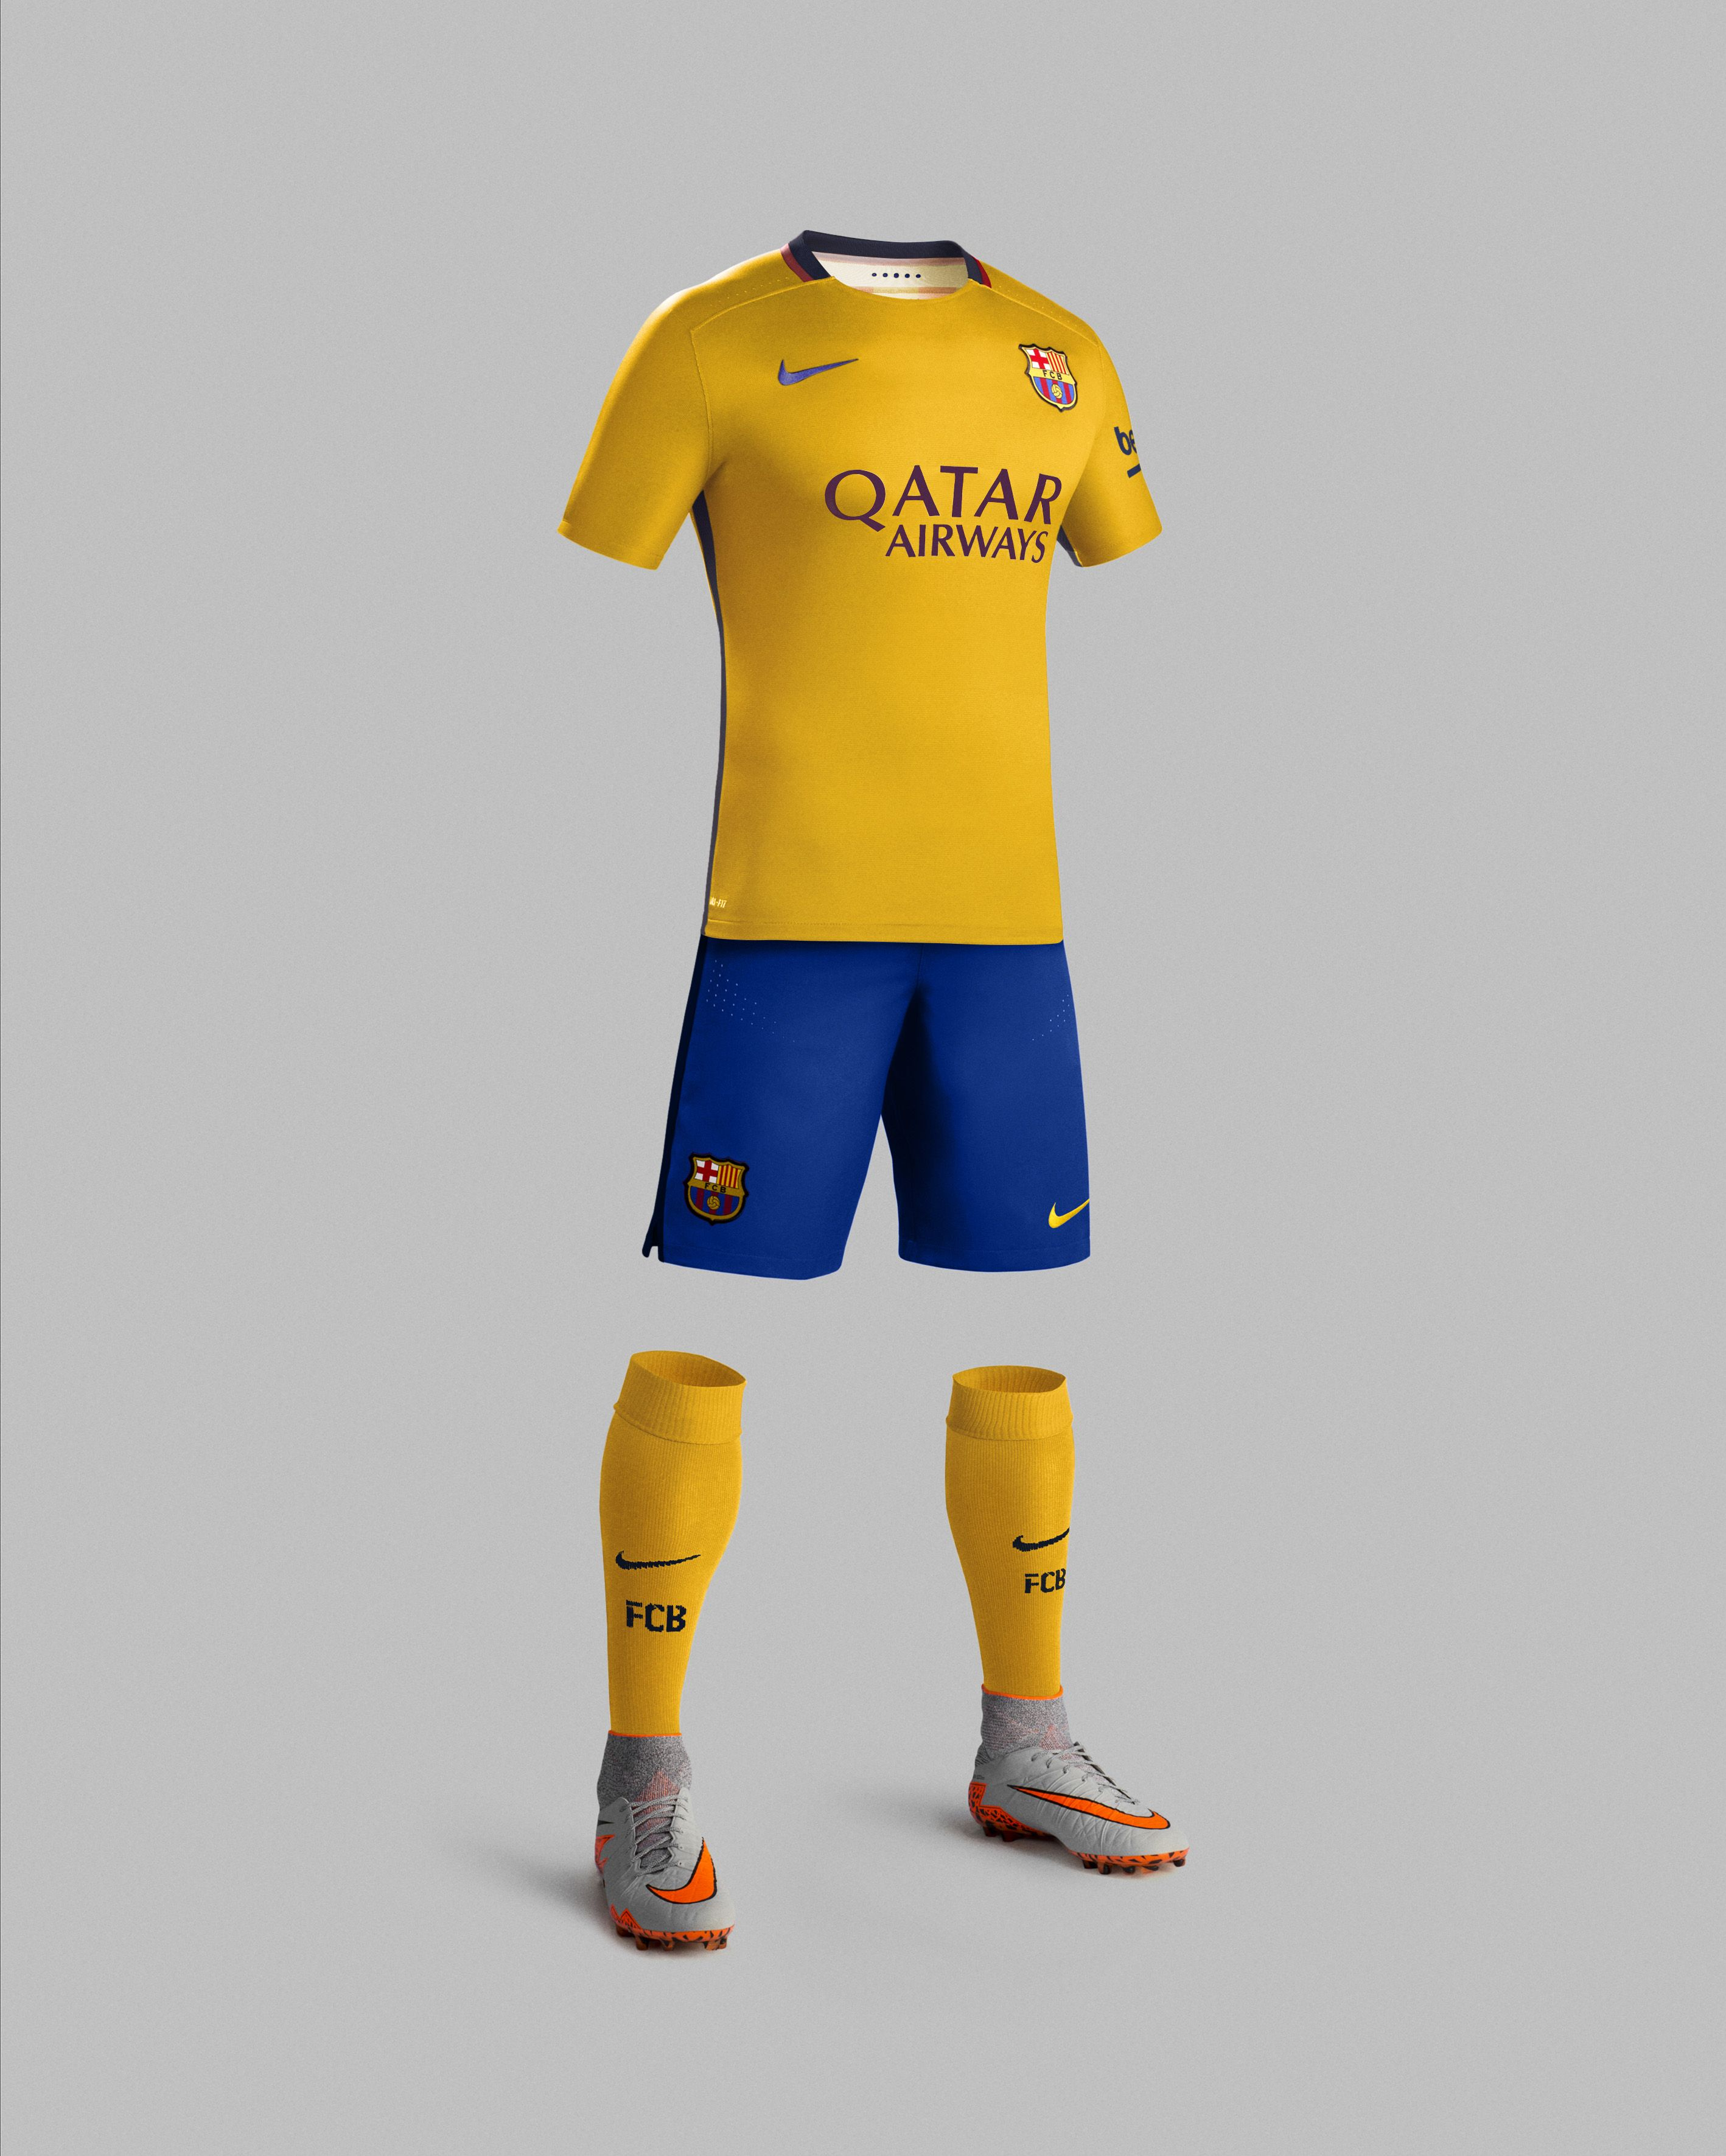 8b85e18c9 Nike News - NIKE AND FC BARCELONA UNVEIL BOLD NEW HOME AND AWAY KITS FOR  2015-16